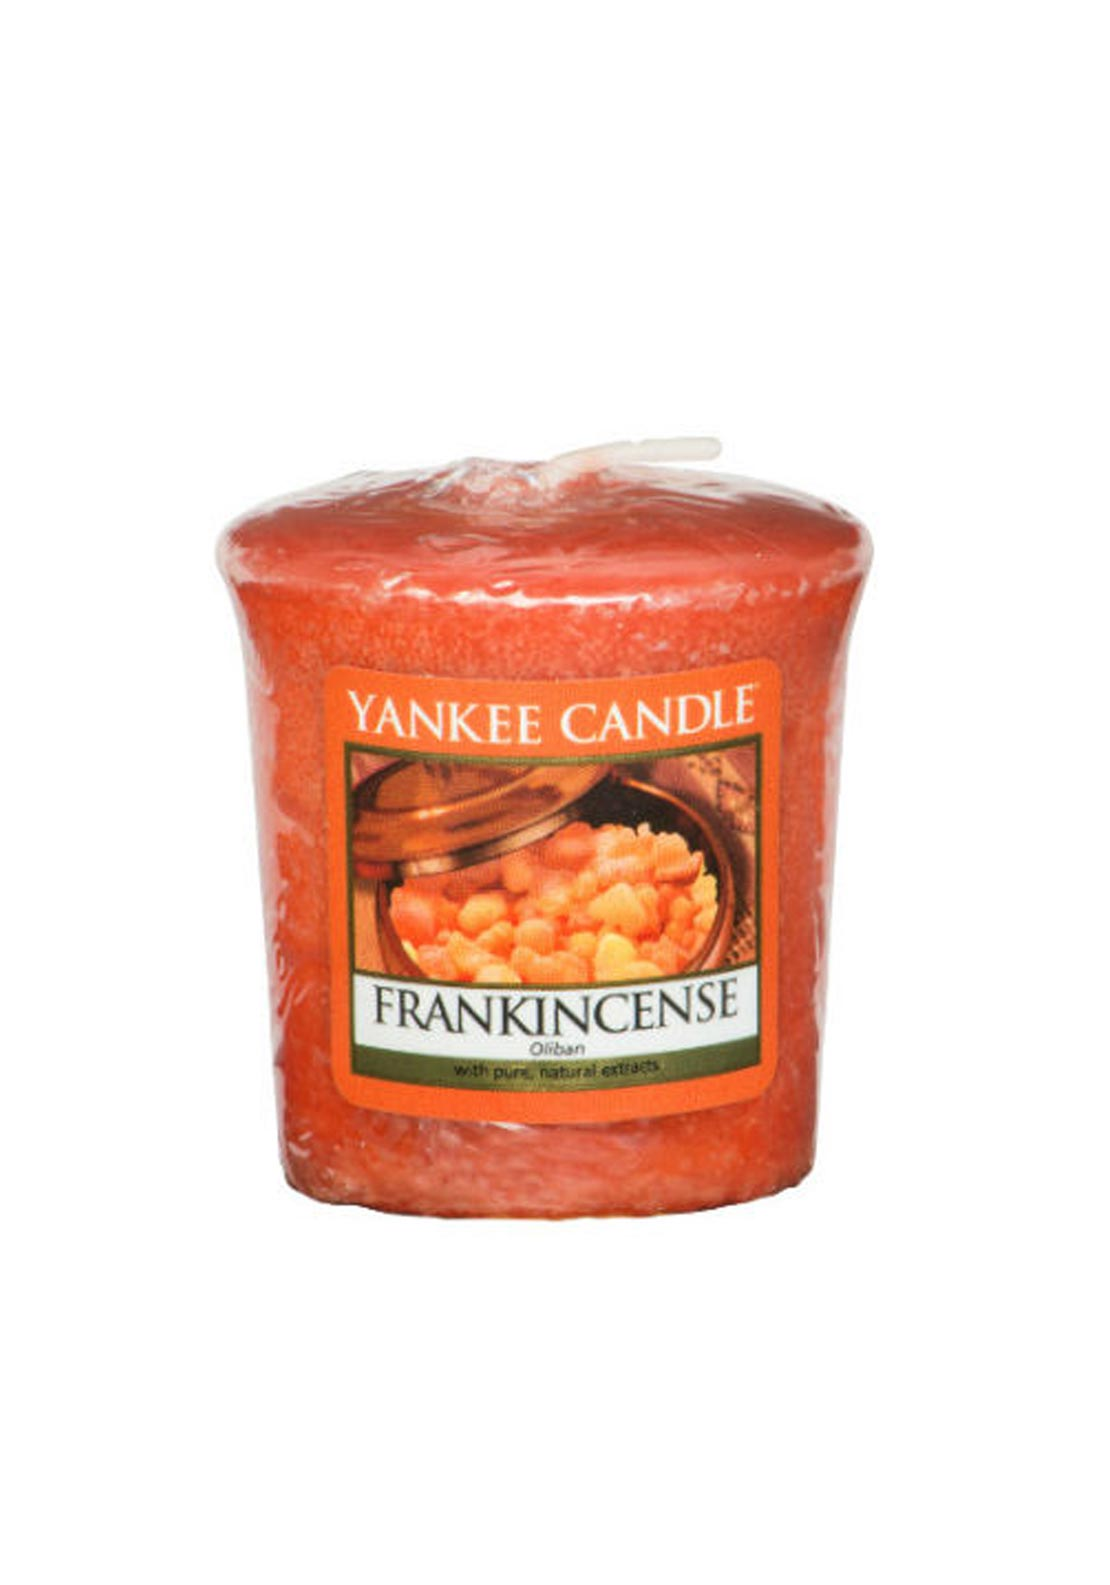 Yankee Candle Sample Votive Candle, Frankincense